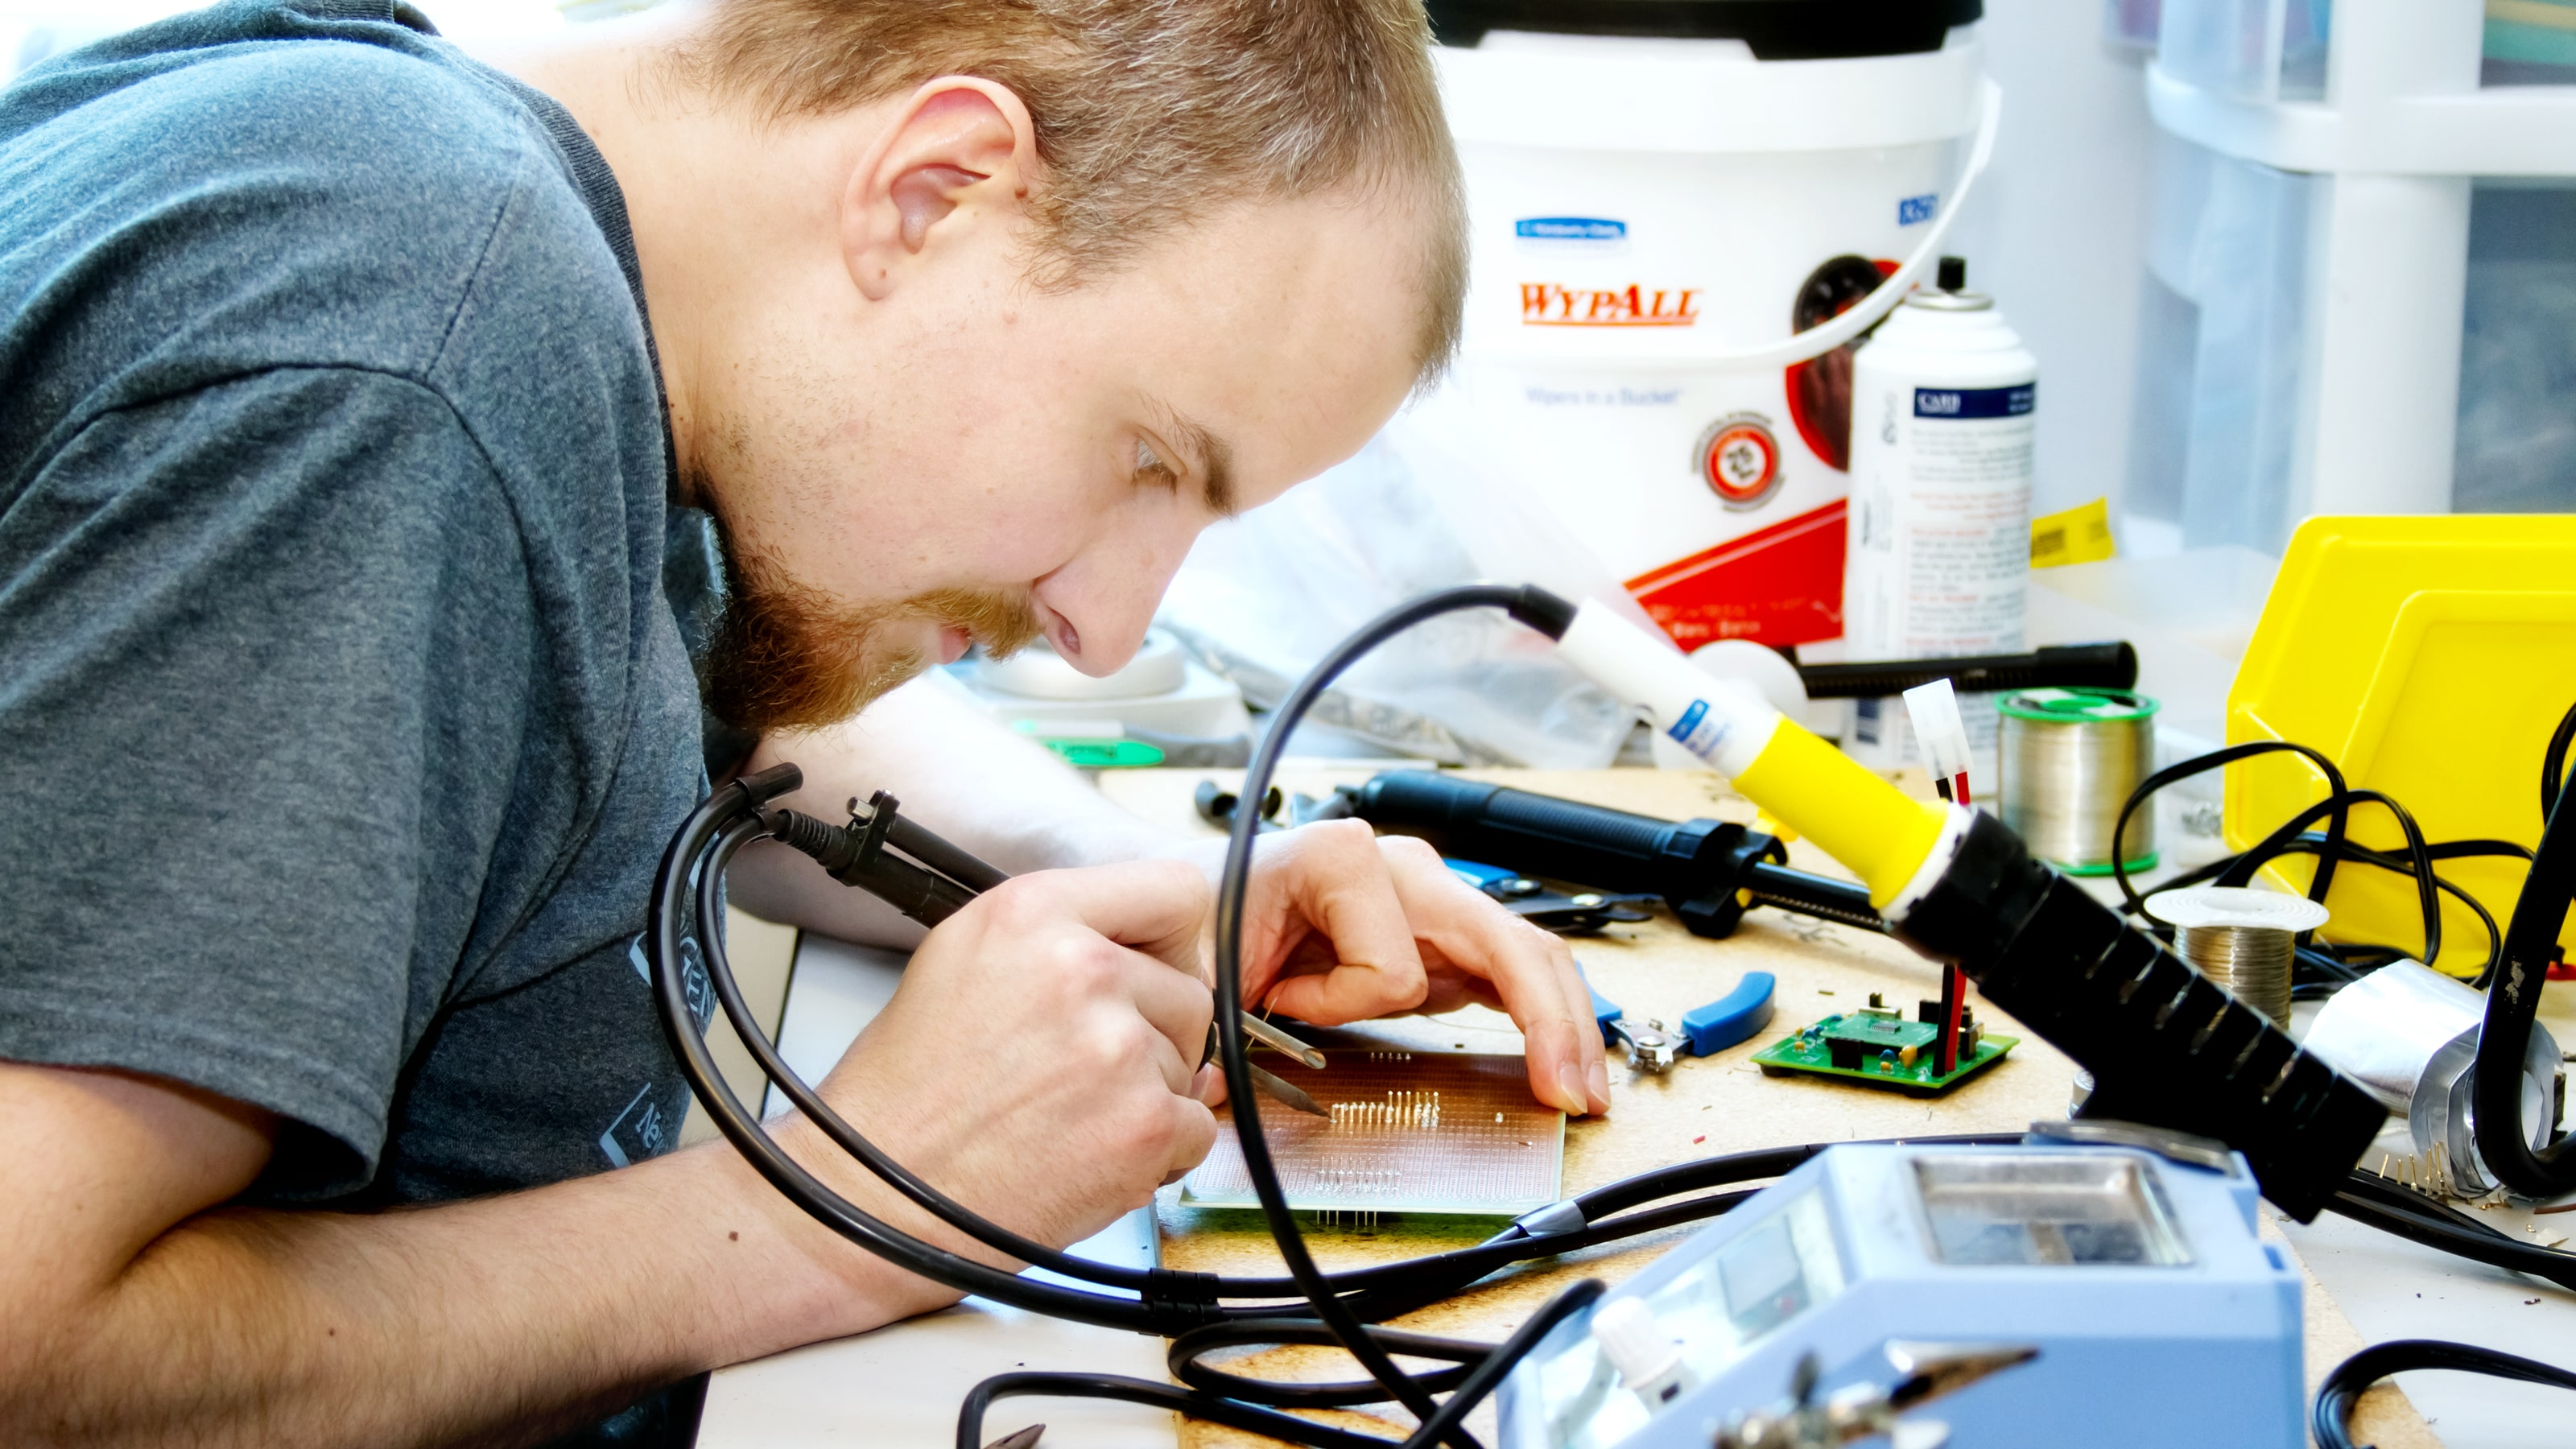 A student solders a circuit board on a desk cluttered with tools.